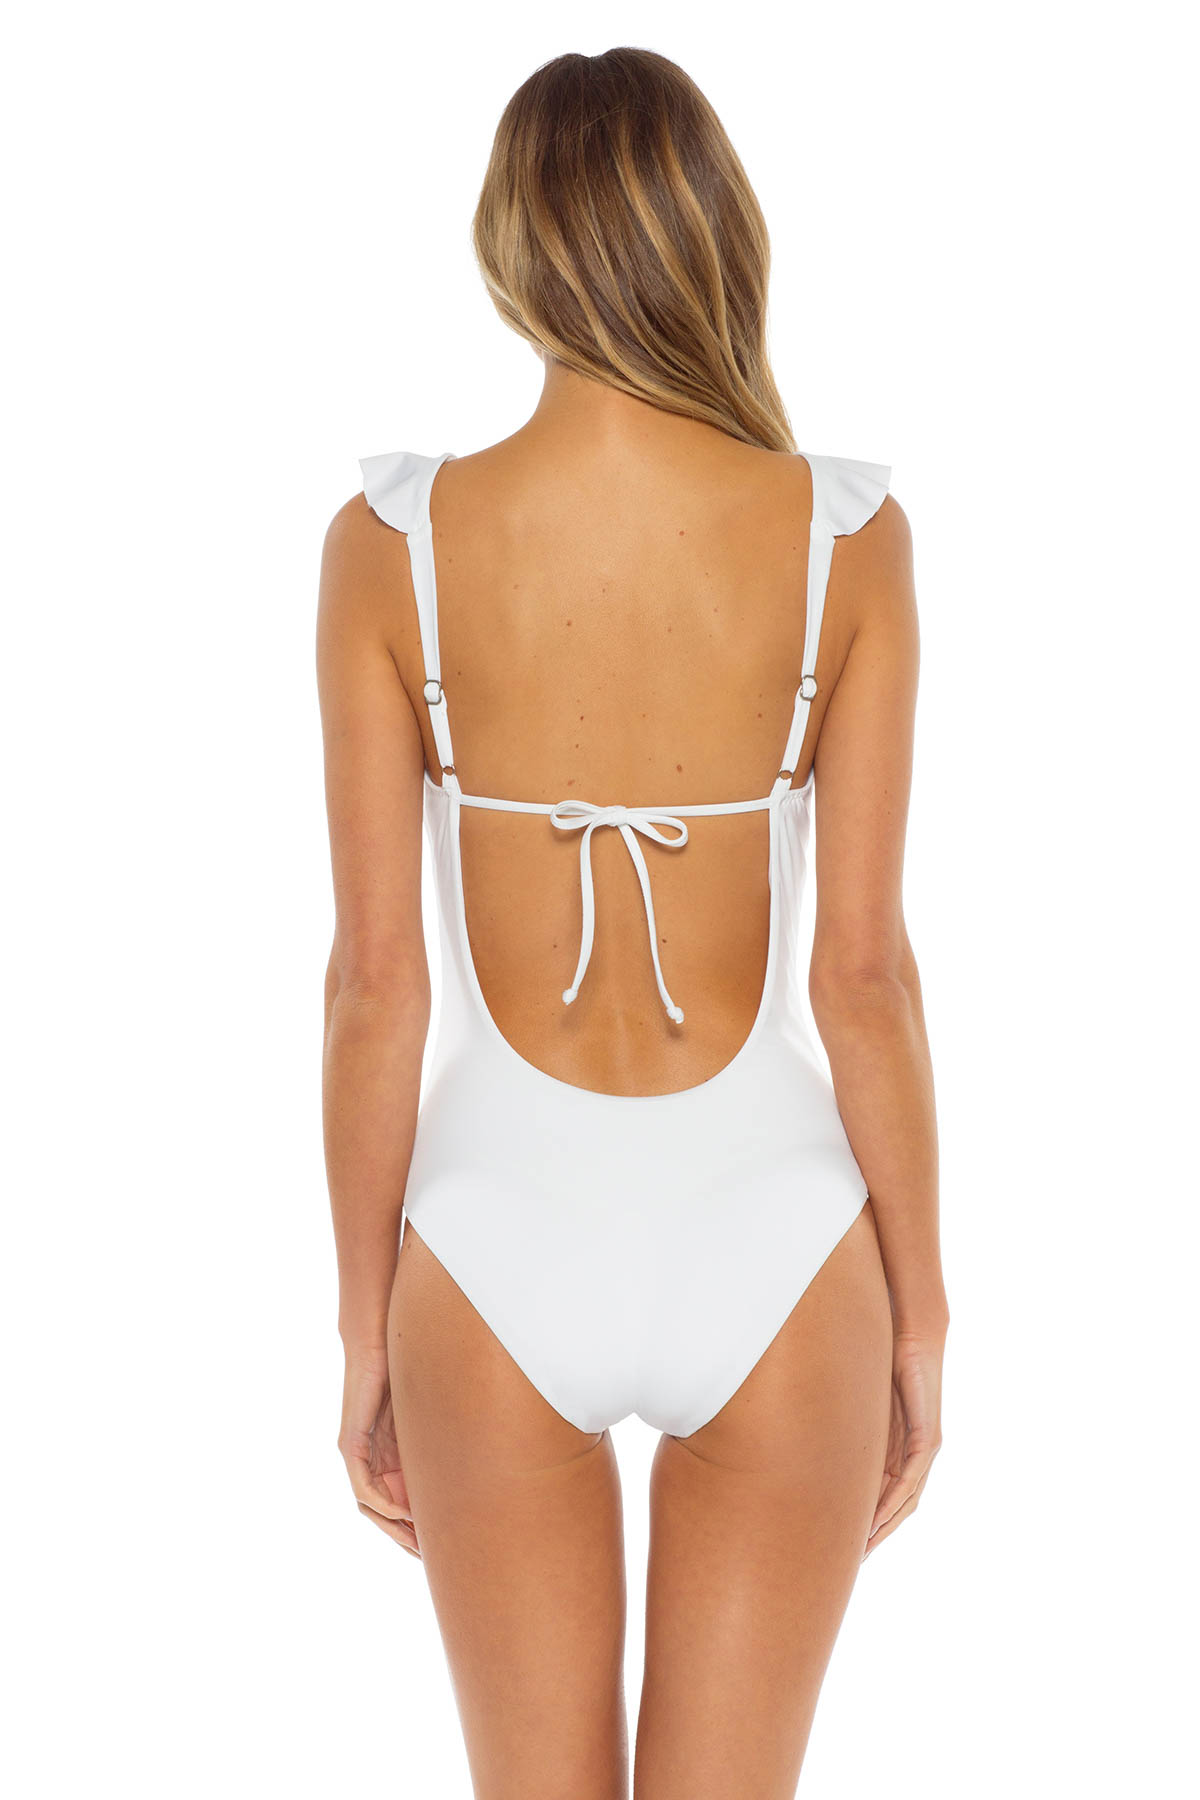 Ruffle Plunge One Piece Swimsuit - White 2